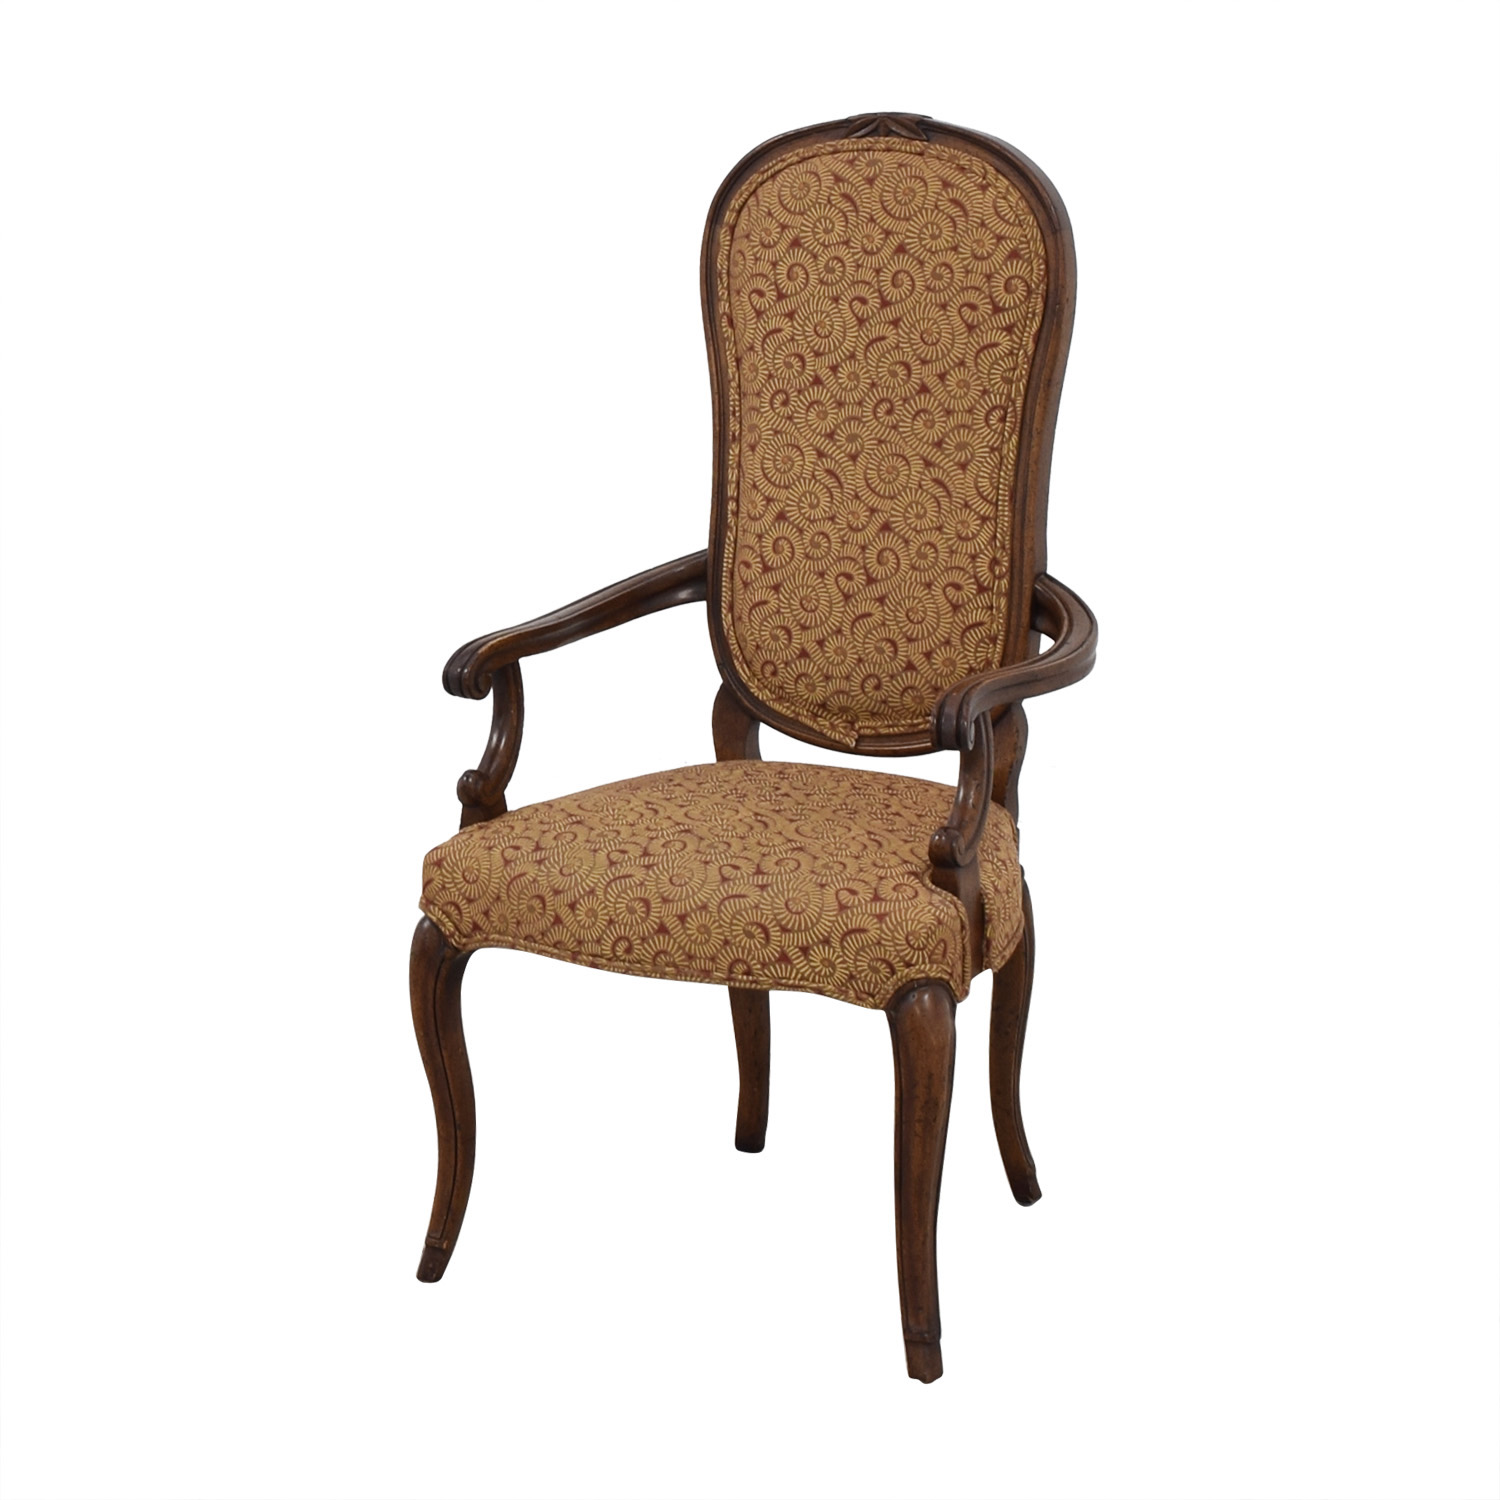 73% OFF   Print Upholstered Dining Chairs / Chairs